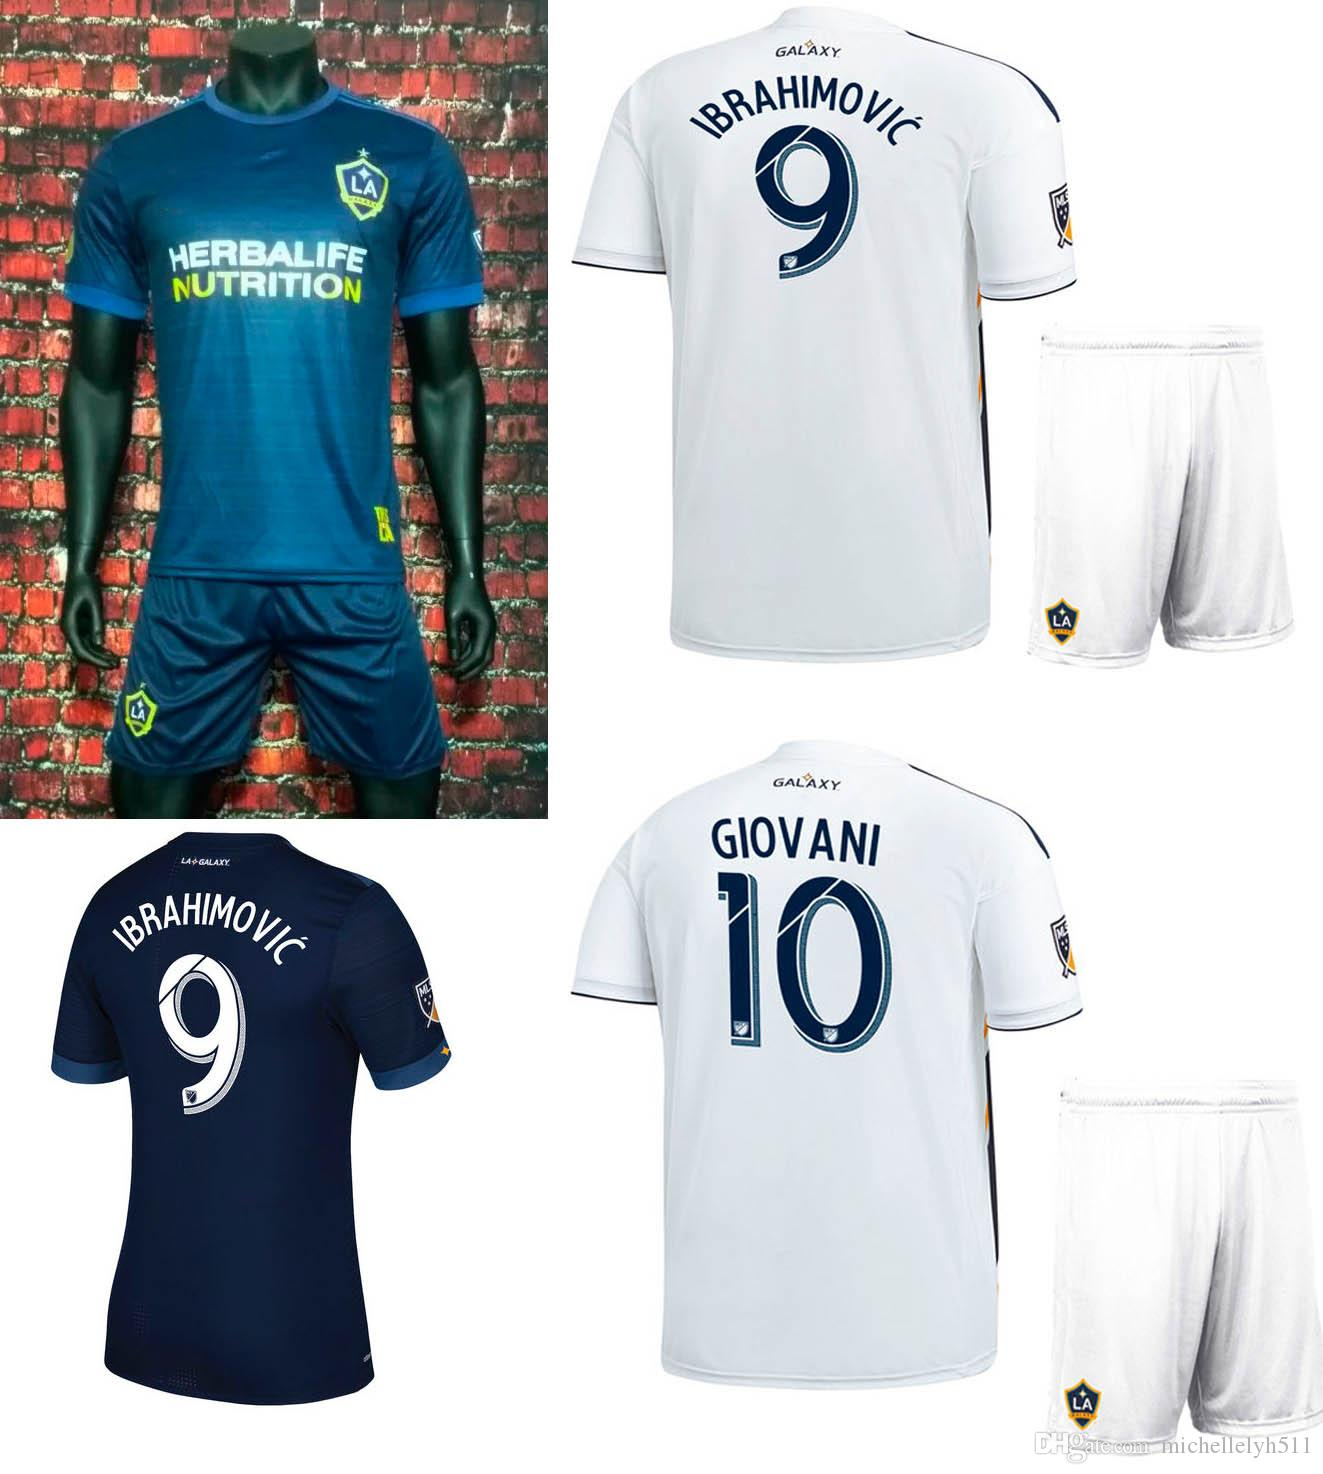 new styles 41fde 967e2 2019 2018 LA Galaxy Soccer Jersey Shorts 18 19 Ibrahimovic GIOVANI Football  Shirts 17 18 Los Angeles Galaxy Away Thai Quality Soccer Uniforms From ...